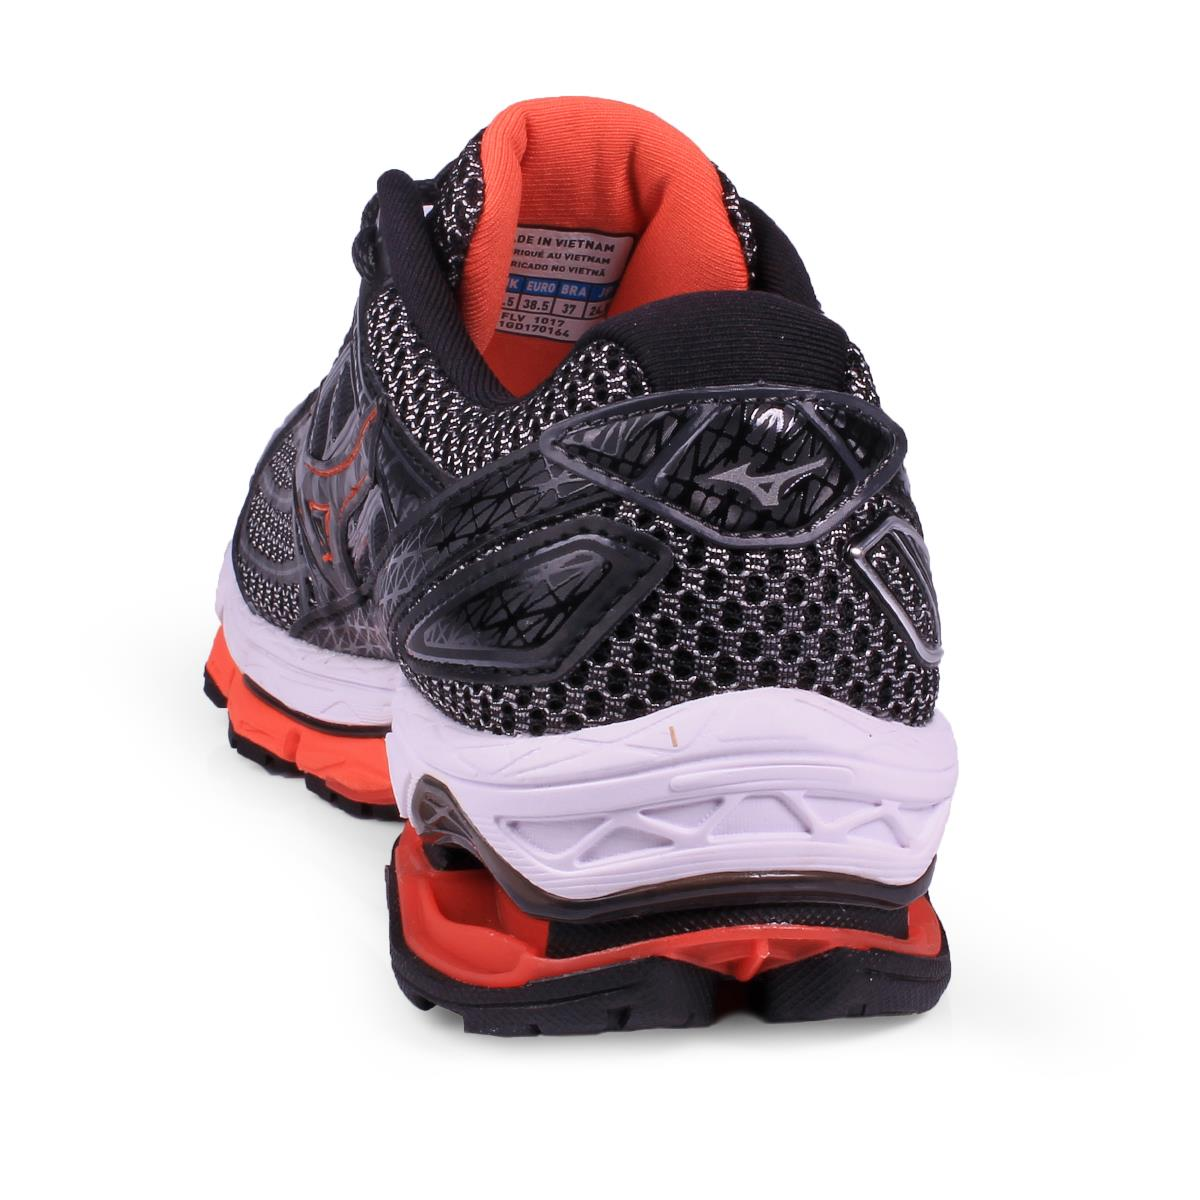 a8bf6c9a4004a 1005327_tenis-mizuno-wave-creation-19-fem_z20_636555040752444043.jpg